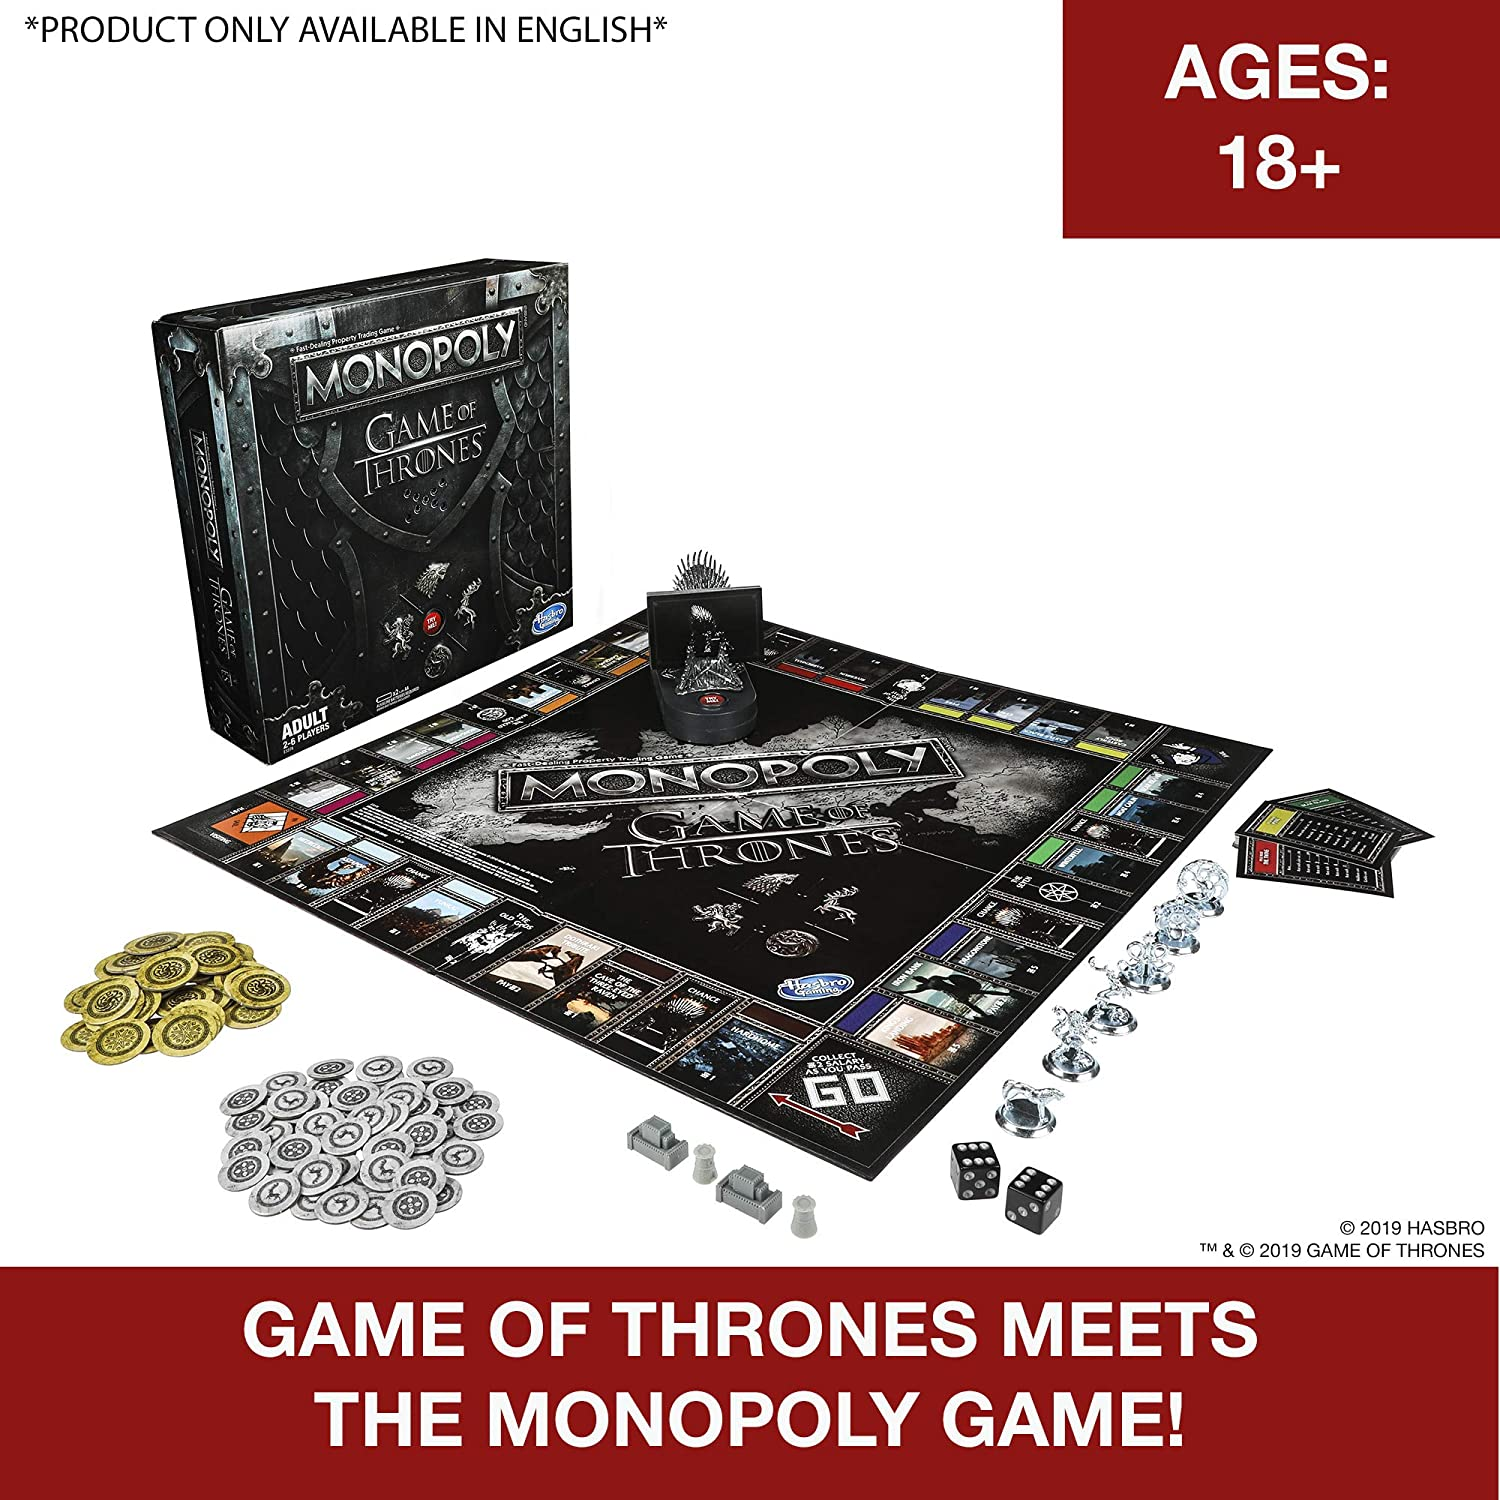 Monopoly Game of Thrones: Amazon.es: Juguetes y juegos